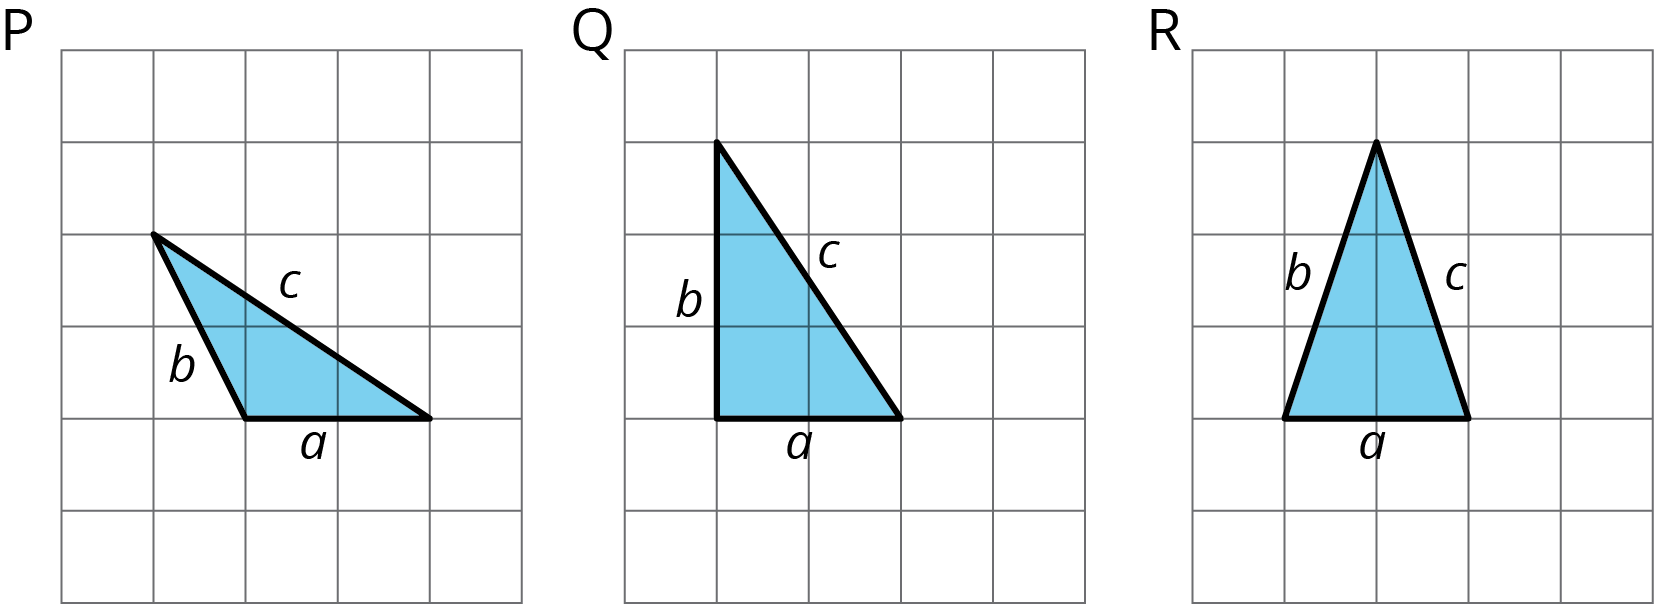 "Three triangles on a grid labeled ""P,"" ""Q,"" and ""R"" with sides a, b, and c. The triangles have the following measurements: Triangle P: Side a is 2 units. Side b slants upwards and to the left. Side c slants downward and to the right. The height of the triangle is 2.  Triangle Q: Horizontal side a is 2 units. Vertical side b is 3 units. Diagonal side c slants downward and to the right and the triangle has a height of 3 units.  Triangle R: Horizontal side a is 2 units. Side b and side c are equal in length. The triangle has a height of 3 units."